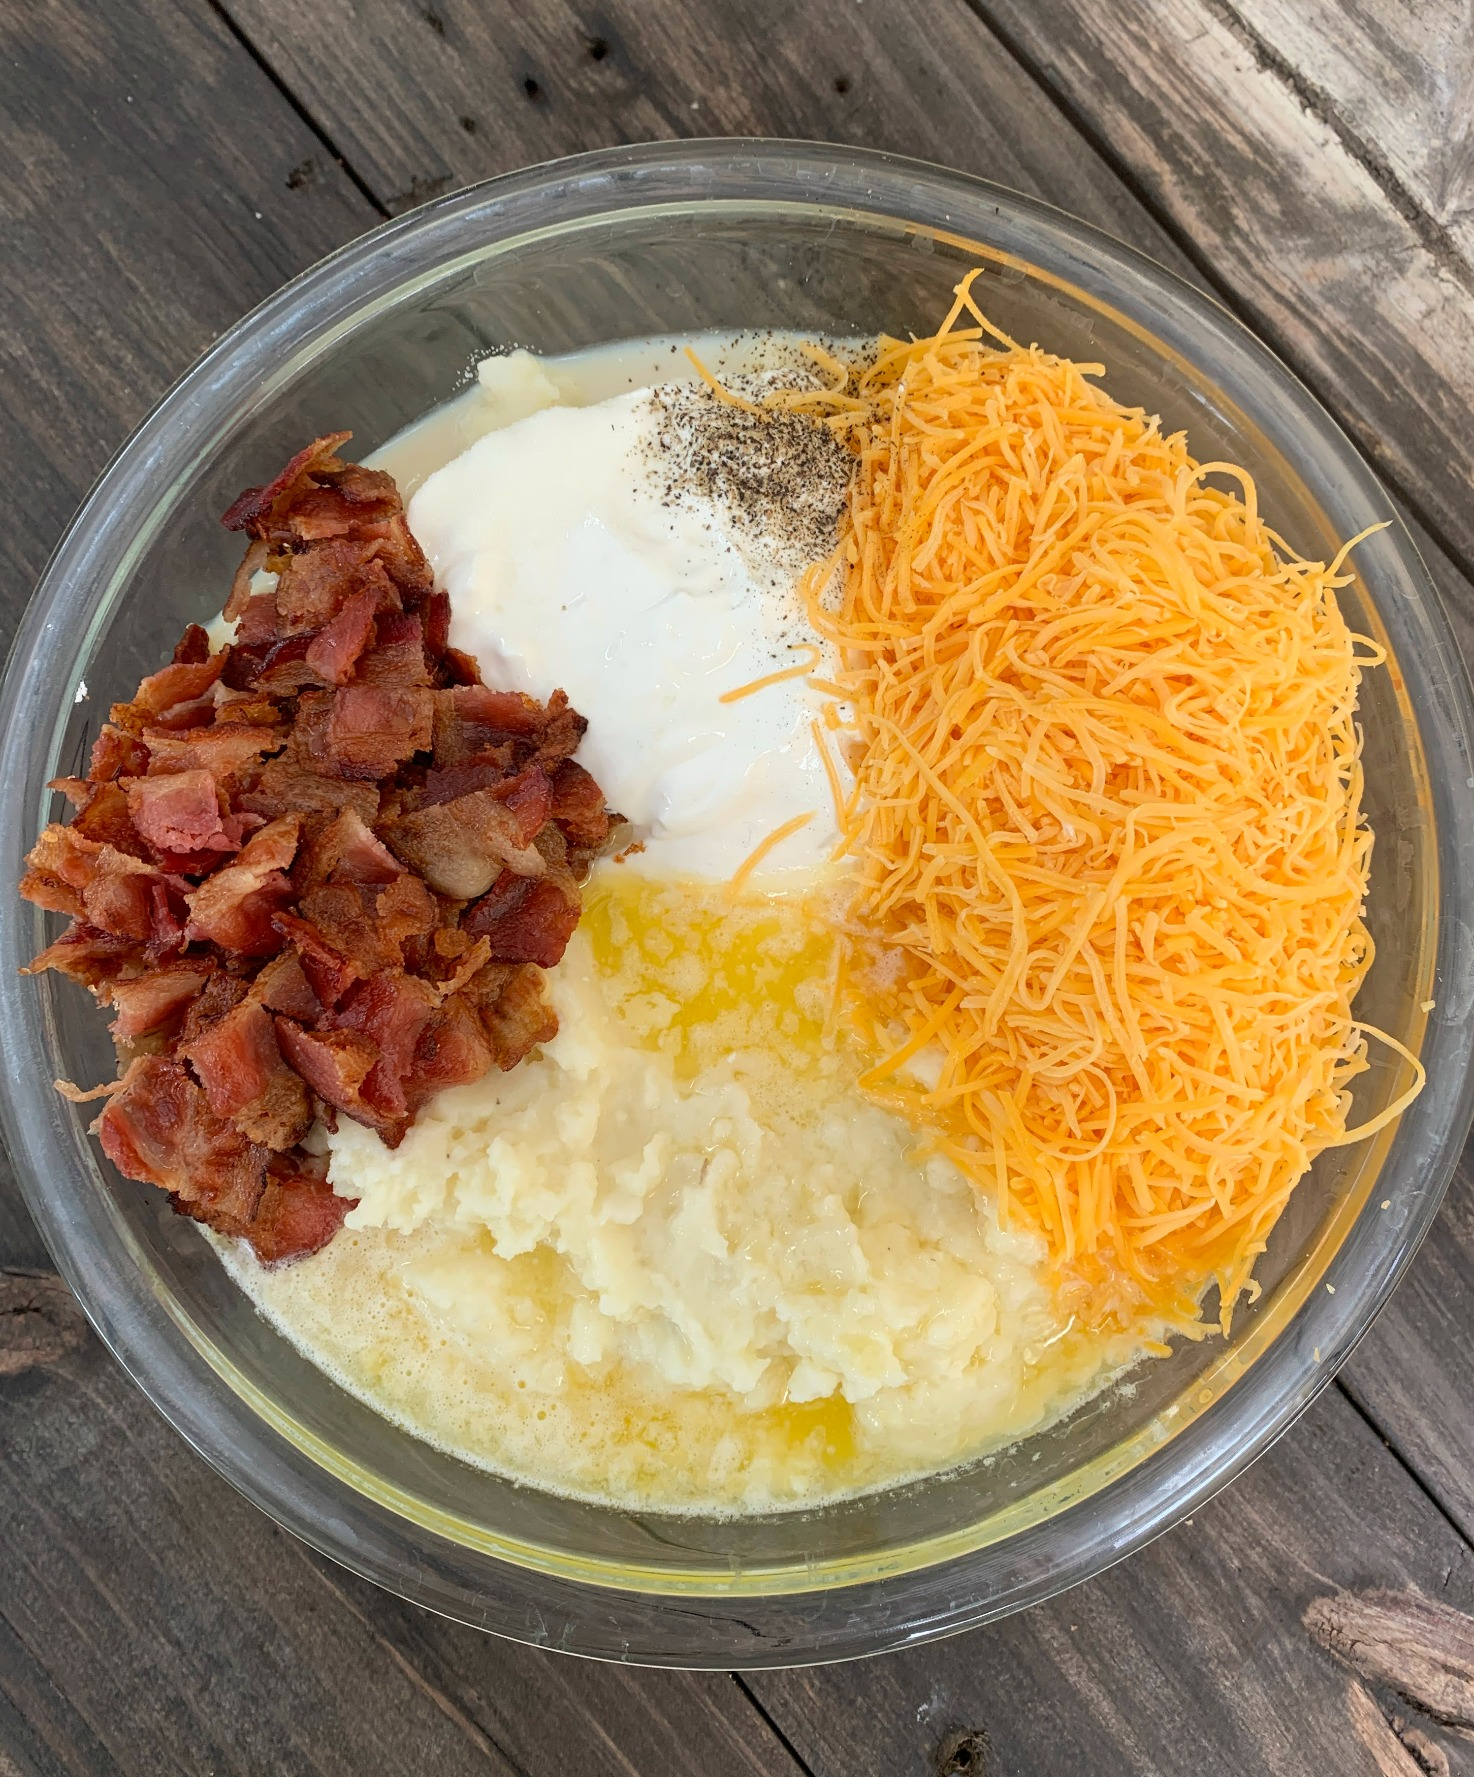 glass bowl with ingredients for white casserole dish with Loaded Mashed Potato Casserole